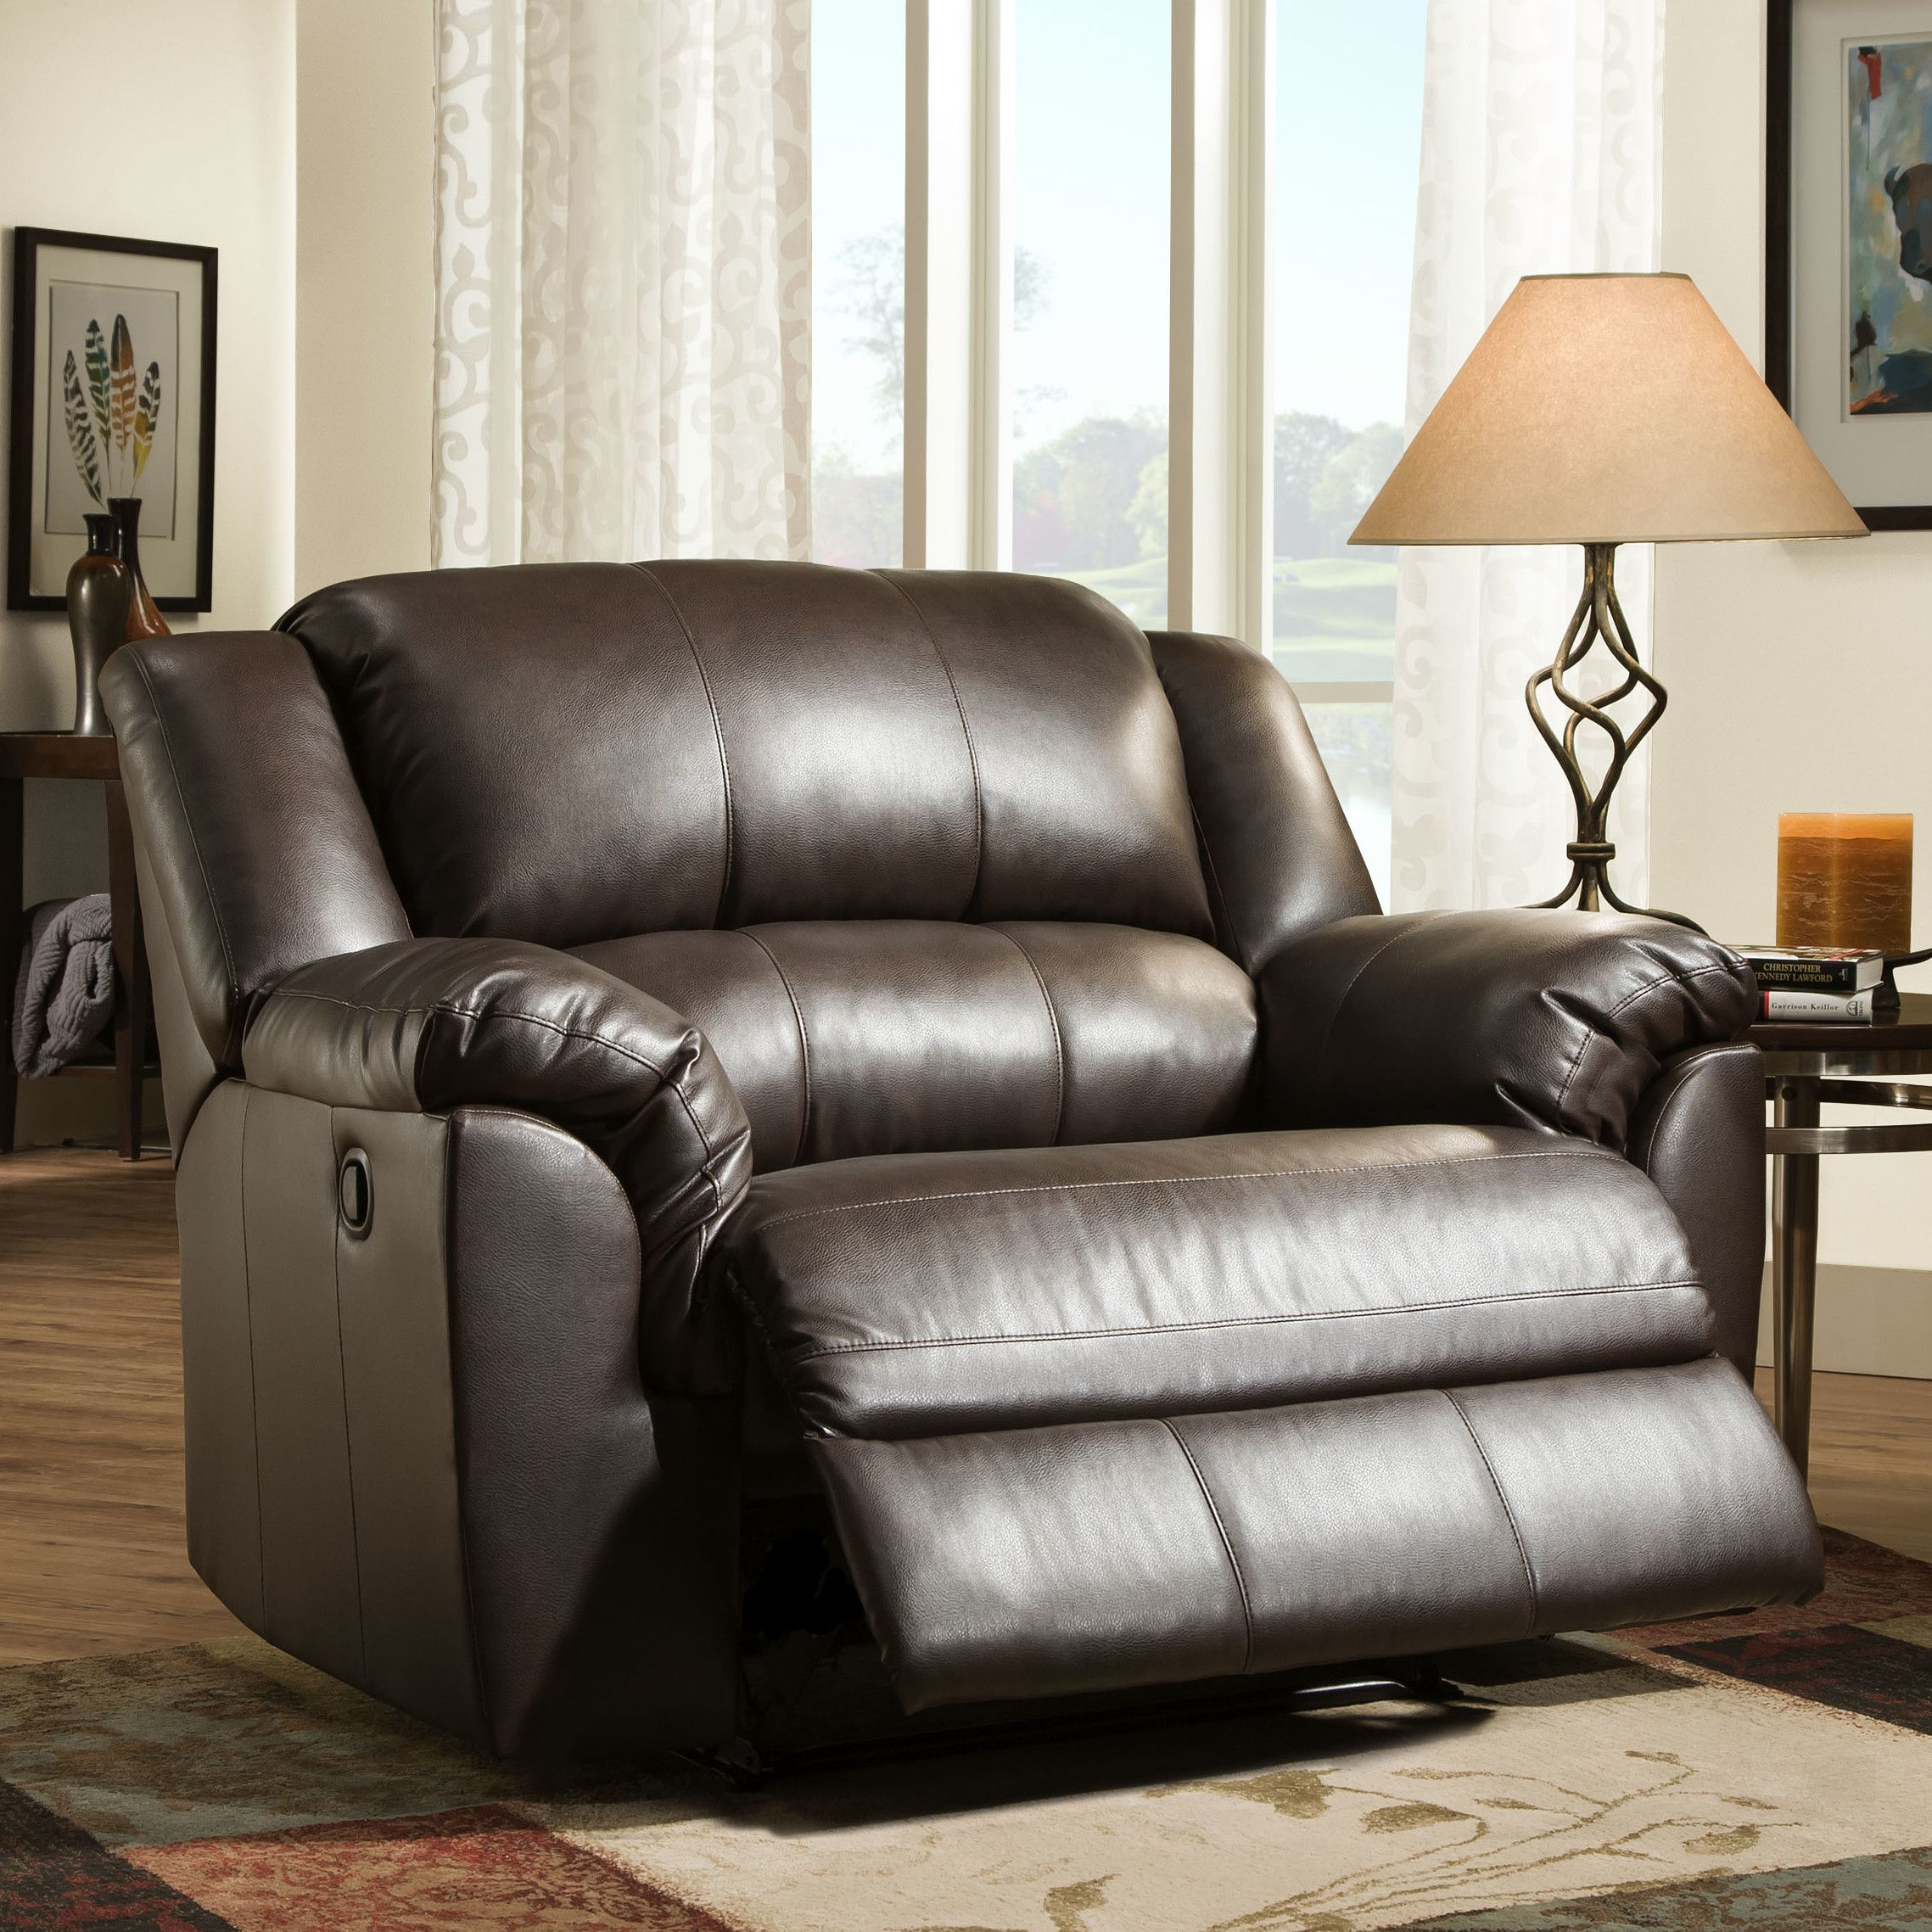 free design today overstock home power signature ashley wide austere by brown garden recliner zero product shipping wall